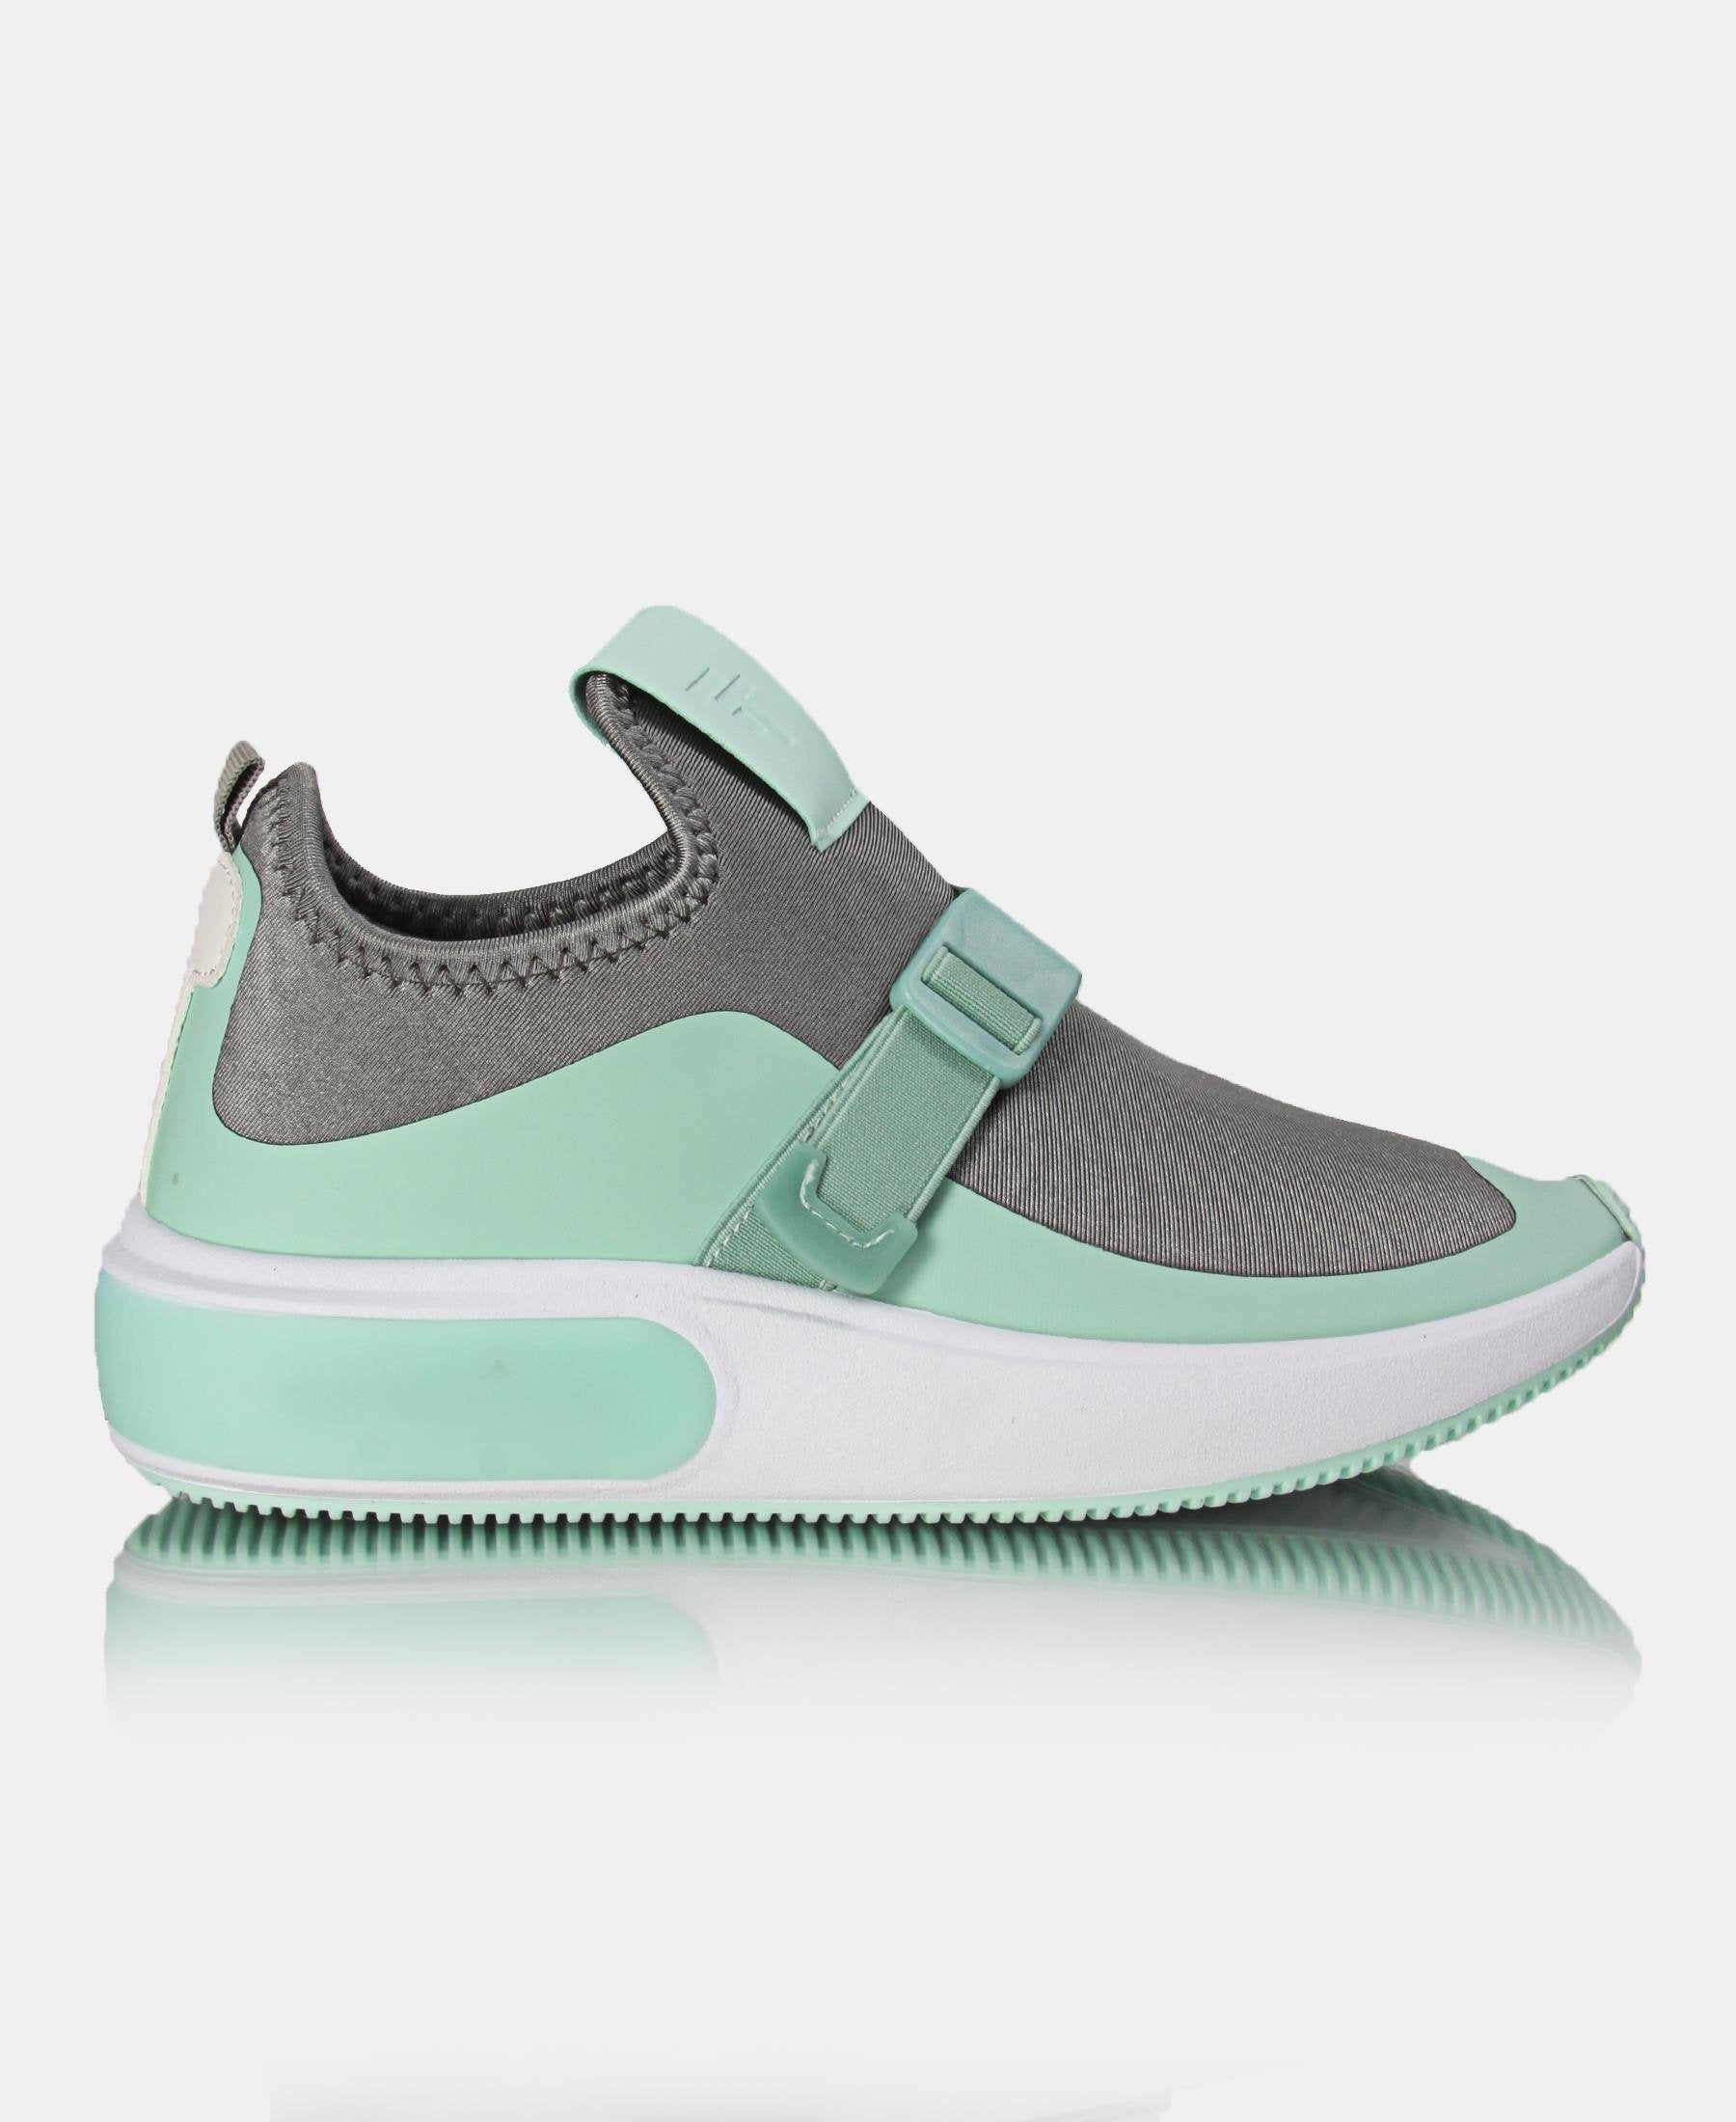 Ladies' Casual Sneakers - Mint